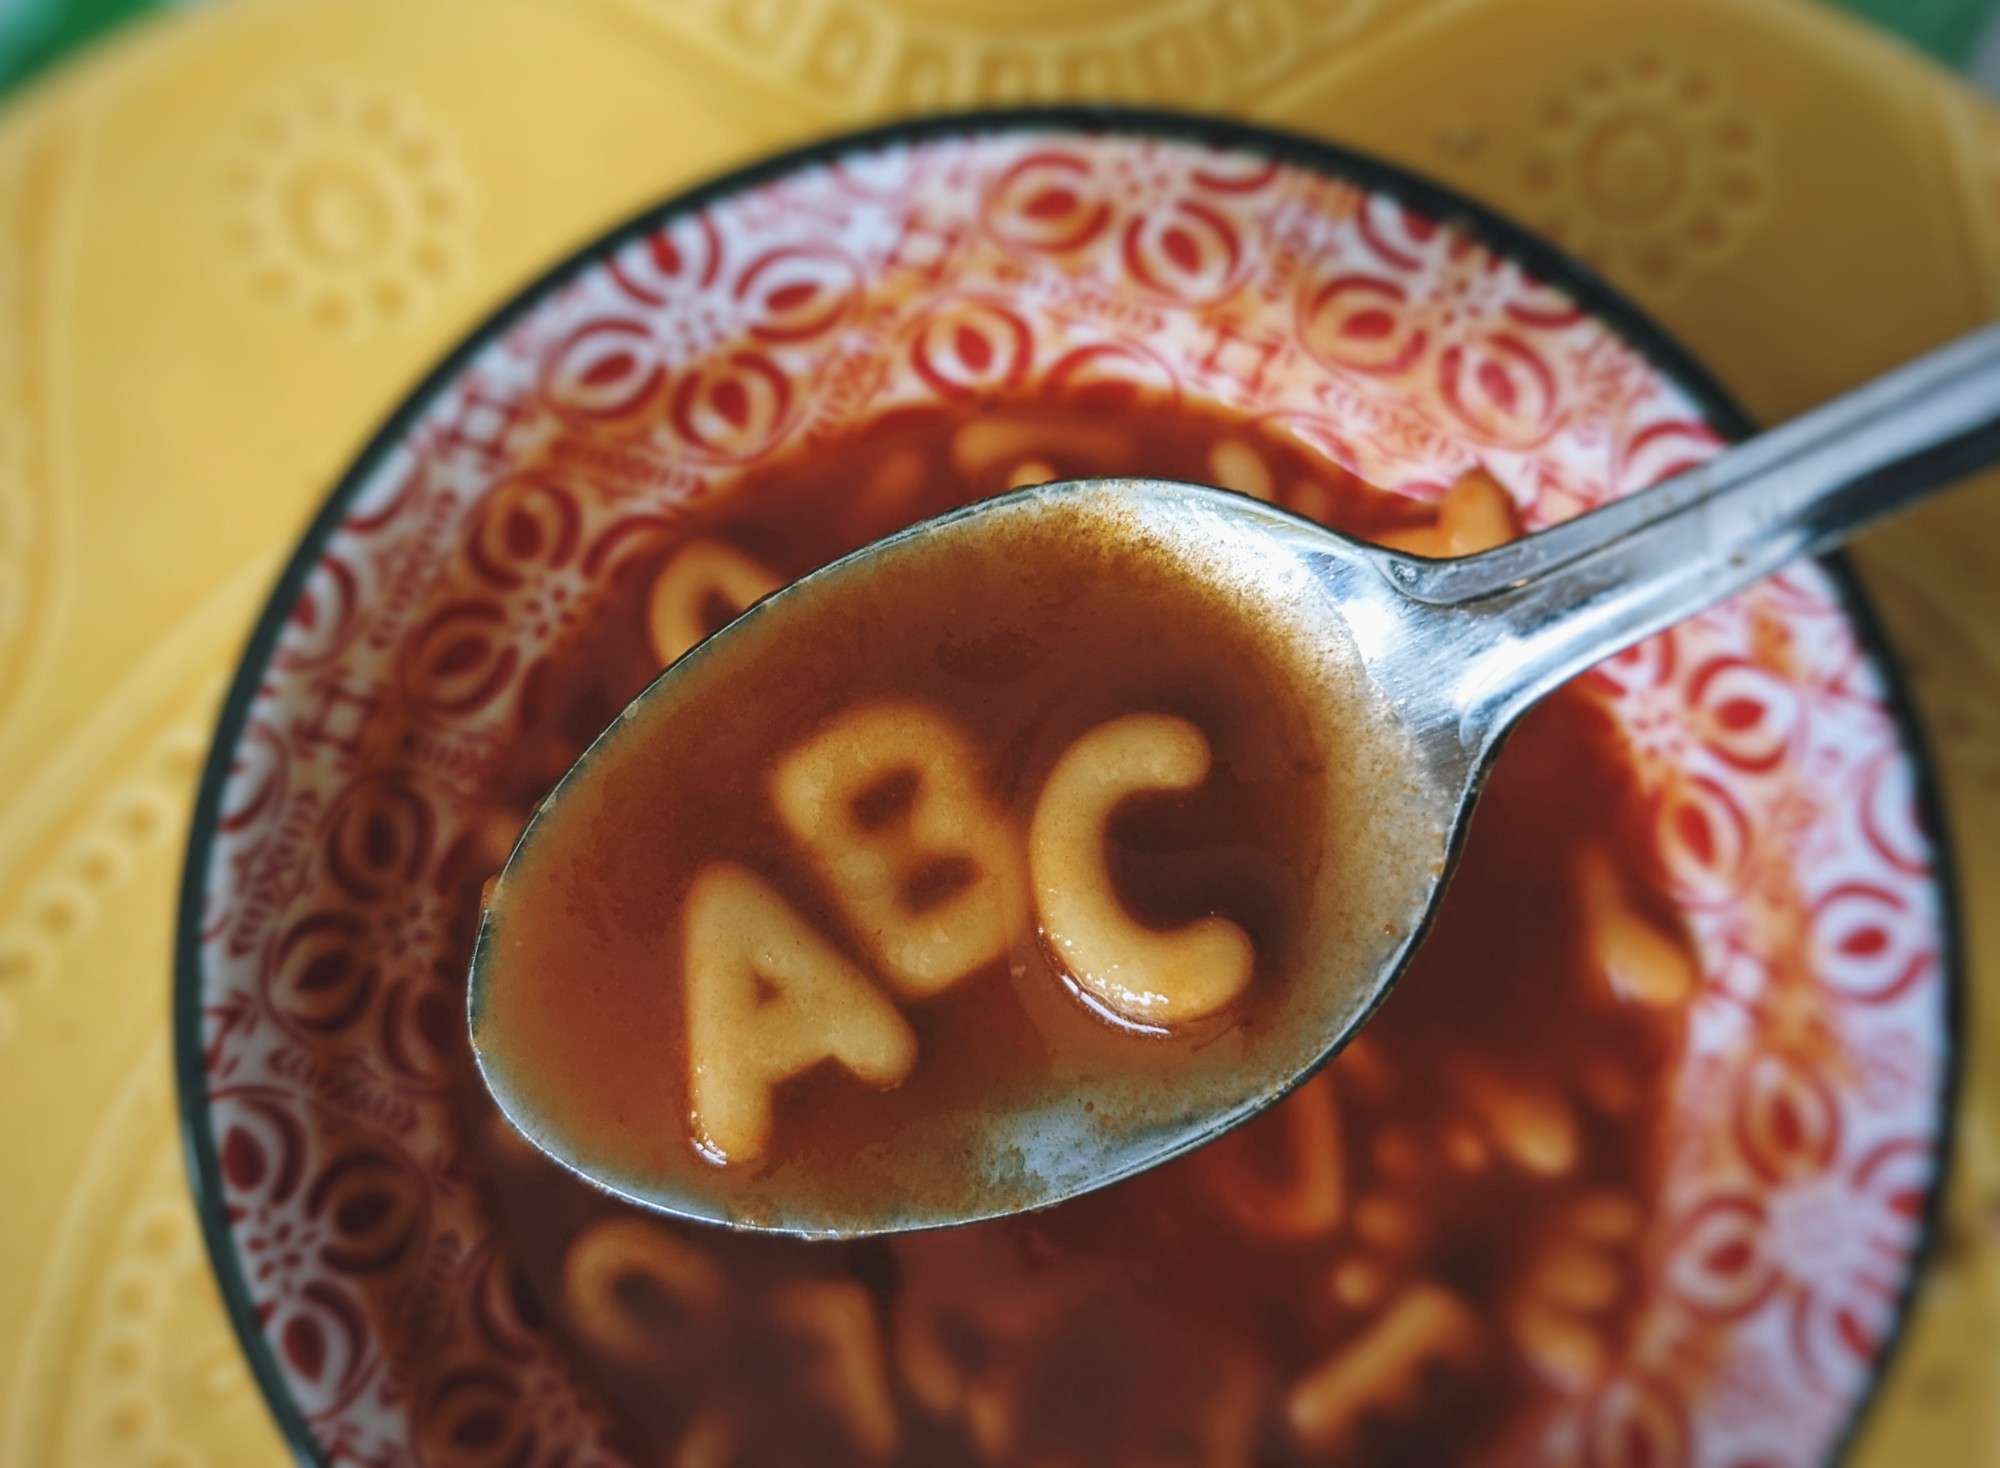 Closeup of spoon with ABC noodles above red-patterned bowl of alphabet soup o yellow tablecloth.